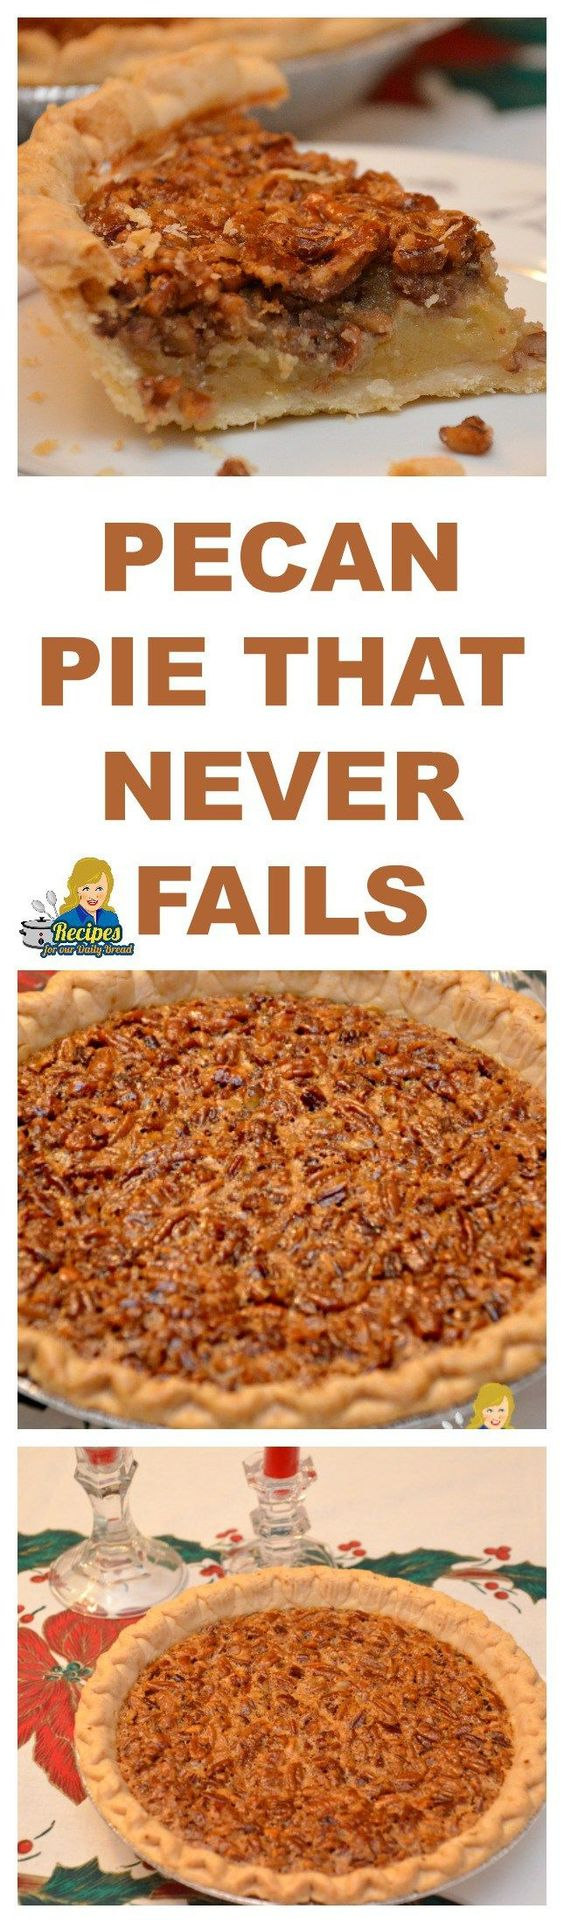 FAILS - EASY SOUTHERN PIE This recipe is a classic Southern Pecan Pie ...